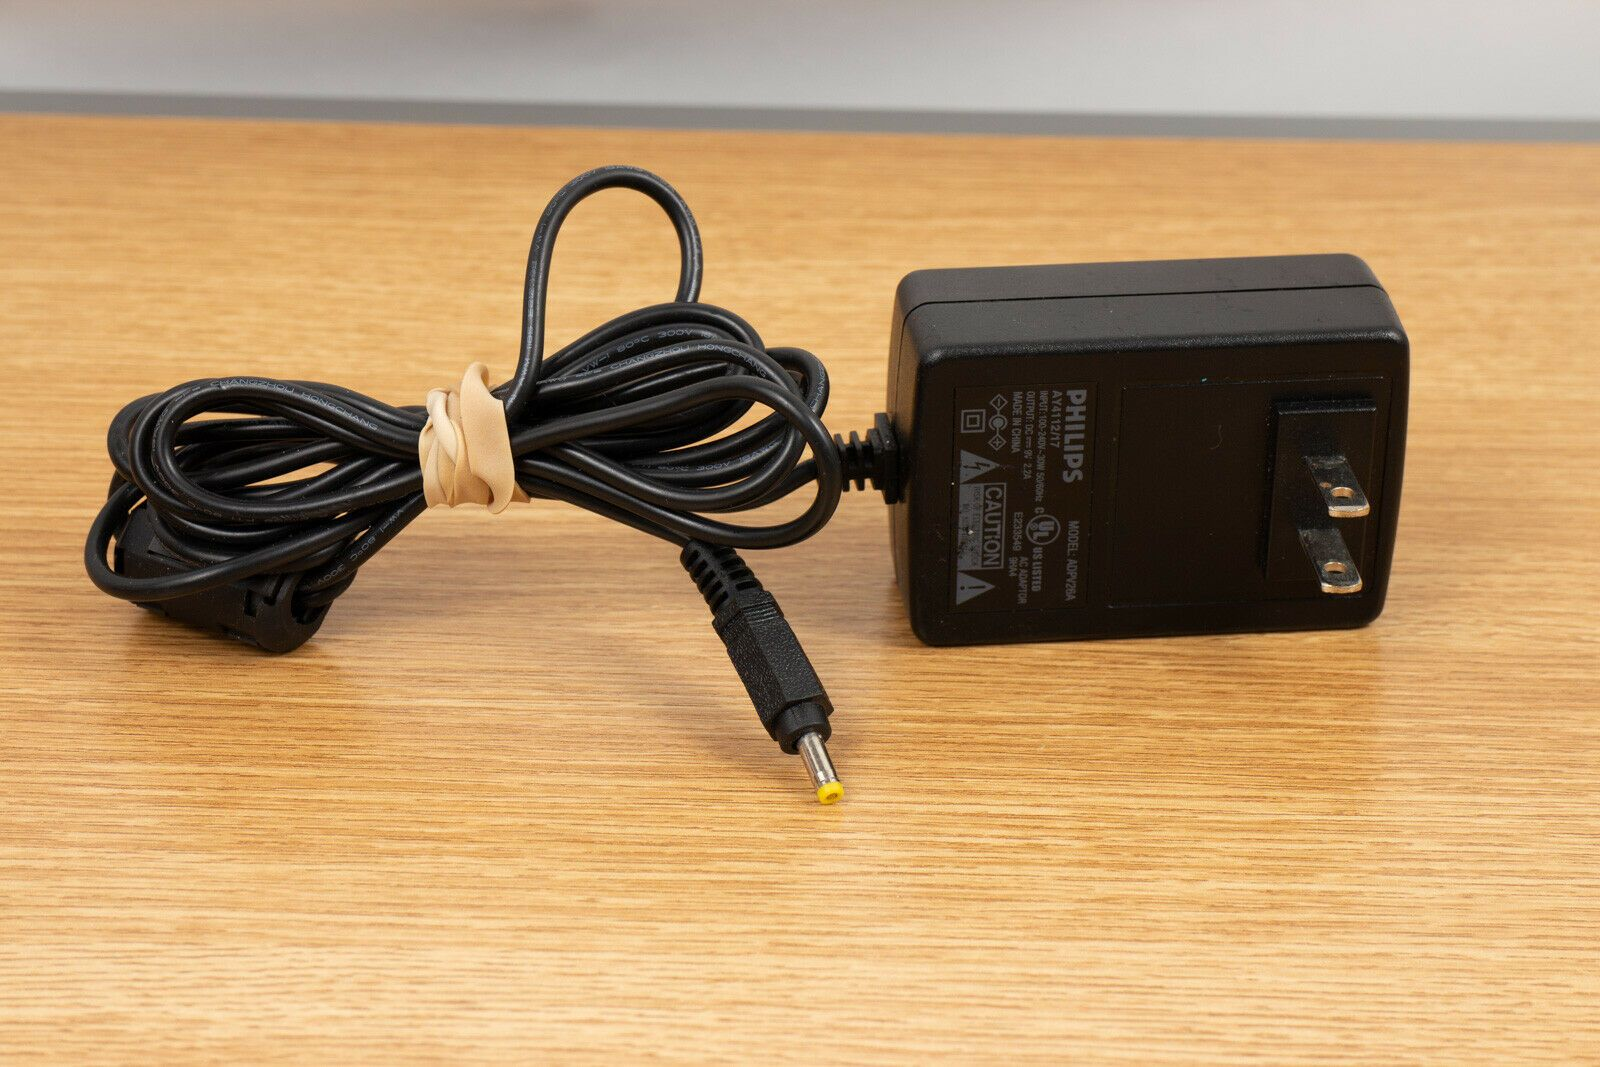 100 Brand New Philips Output 9v 2 2a Adpv26a Ac Dc Charger Adapter Power Supply Charger Adapter Acdc Power Supply